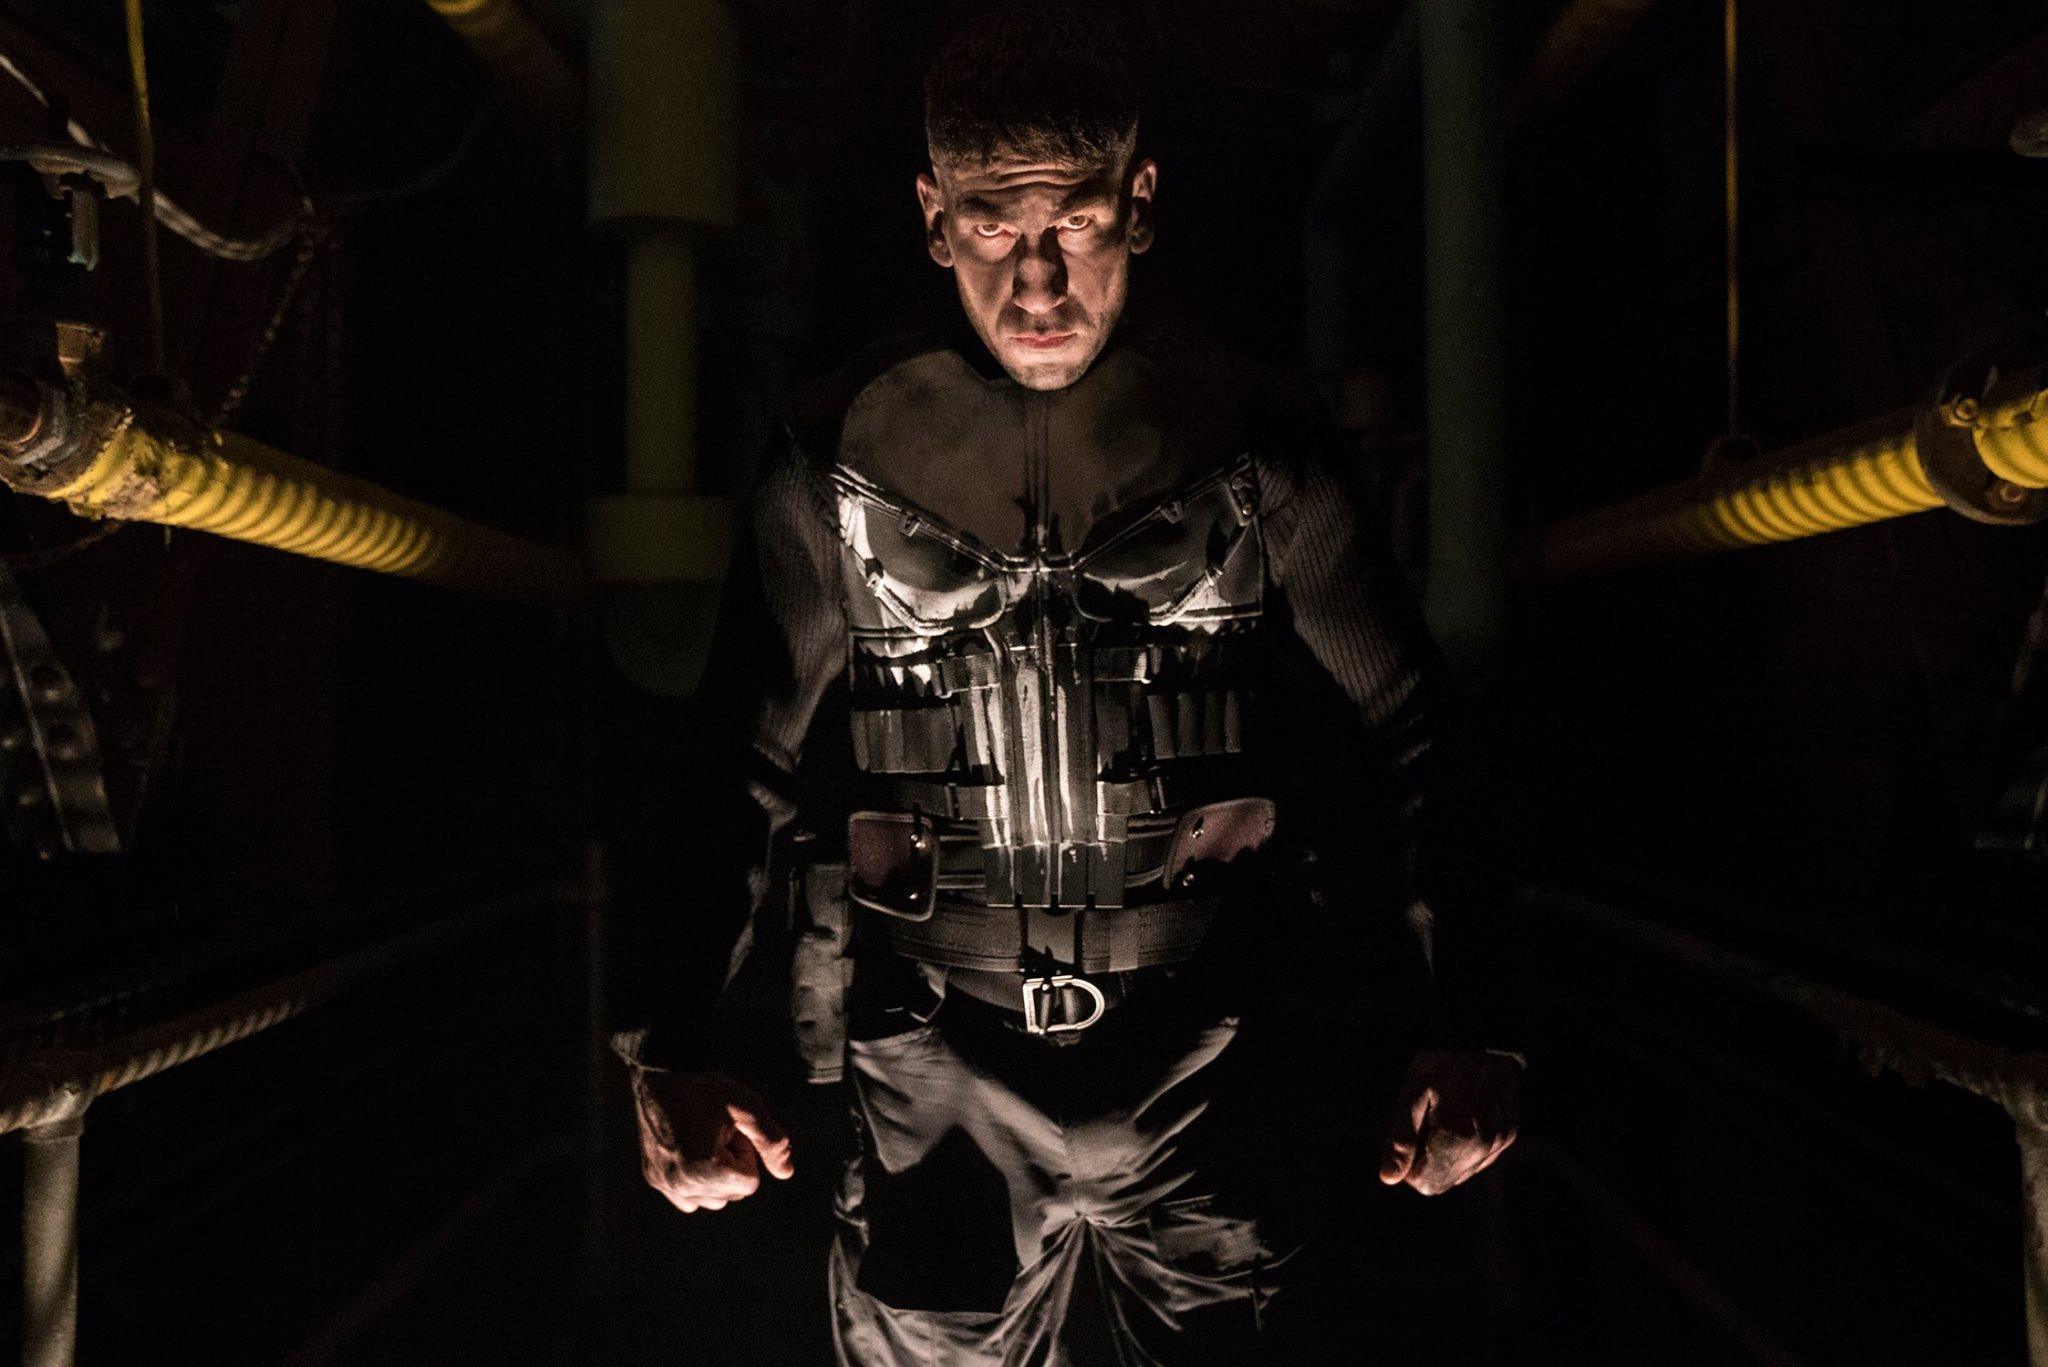 New 'Punisher' Photos Tease Frank Castle's Transformation